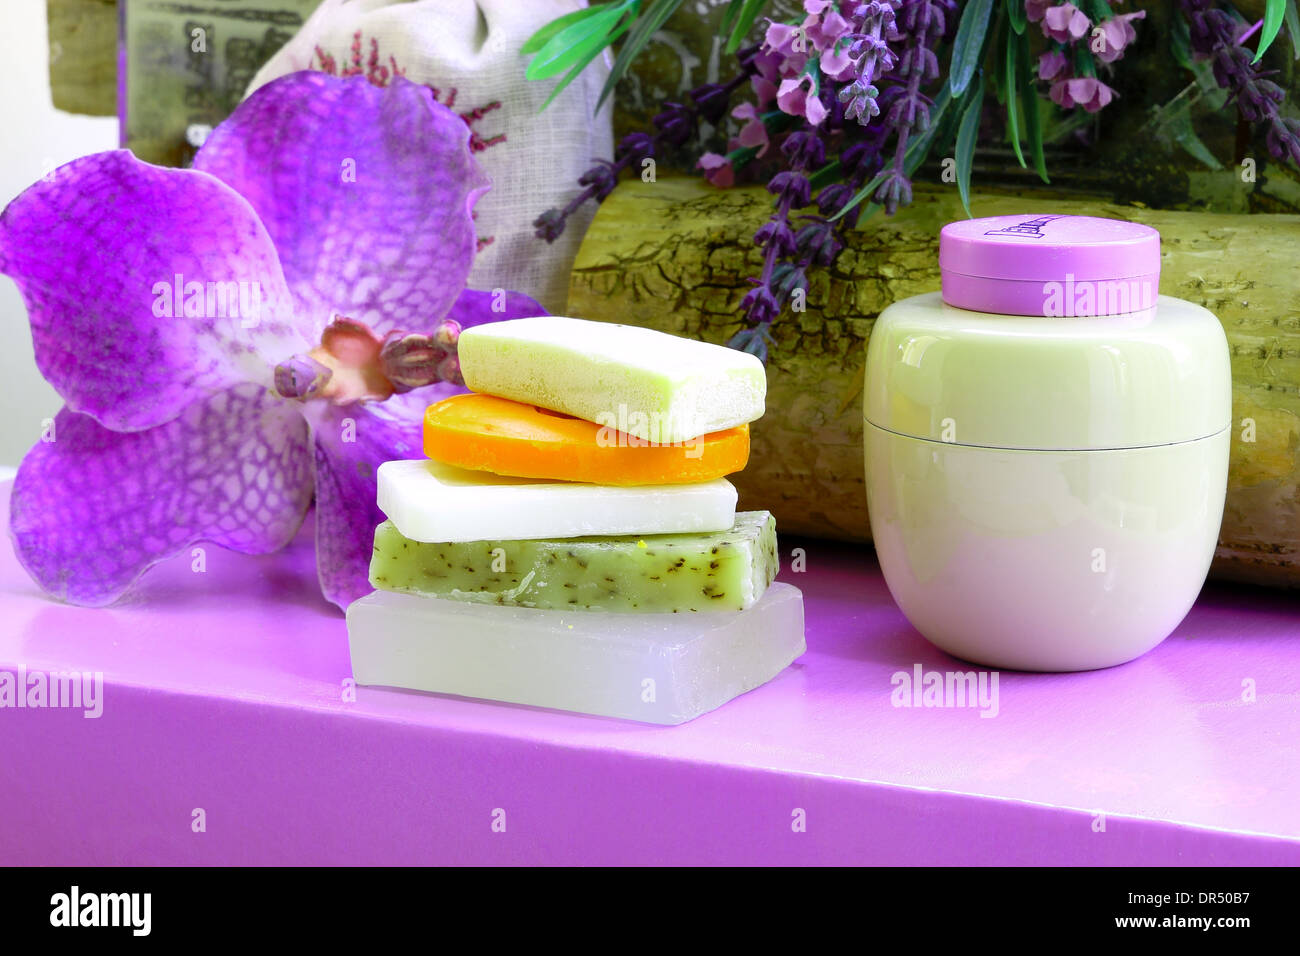 Still life in radiant orchid - Stock Image